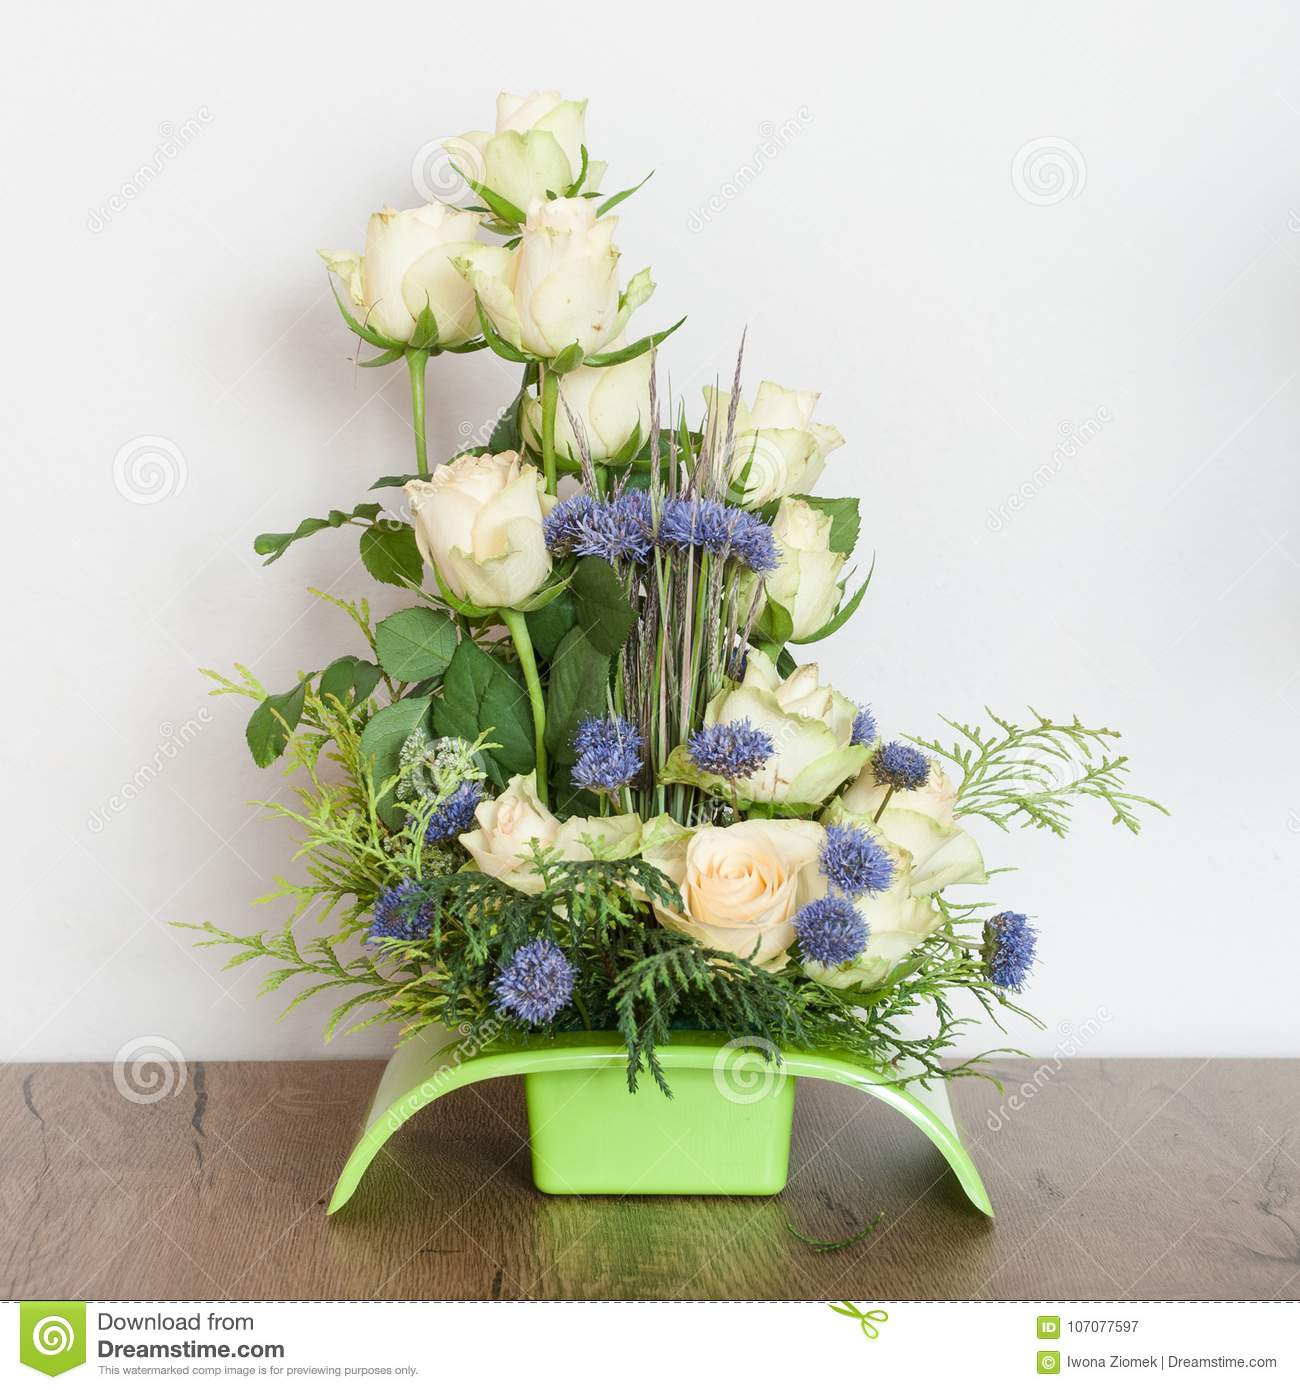 Flower arrangement of white roses with the addition of field blue flowers 653f0a63abf